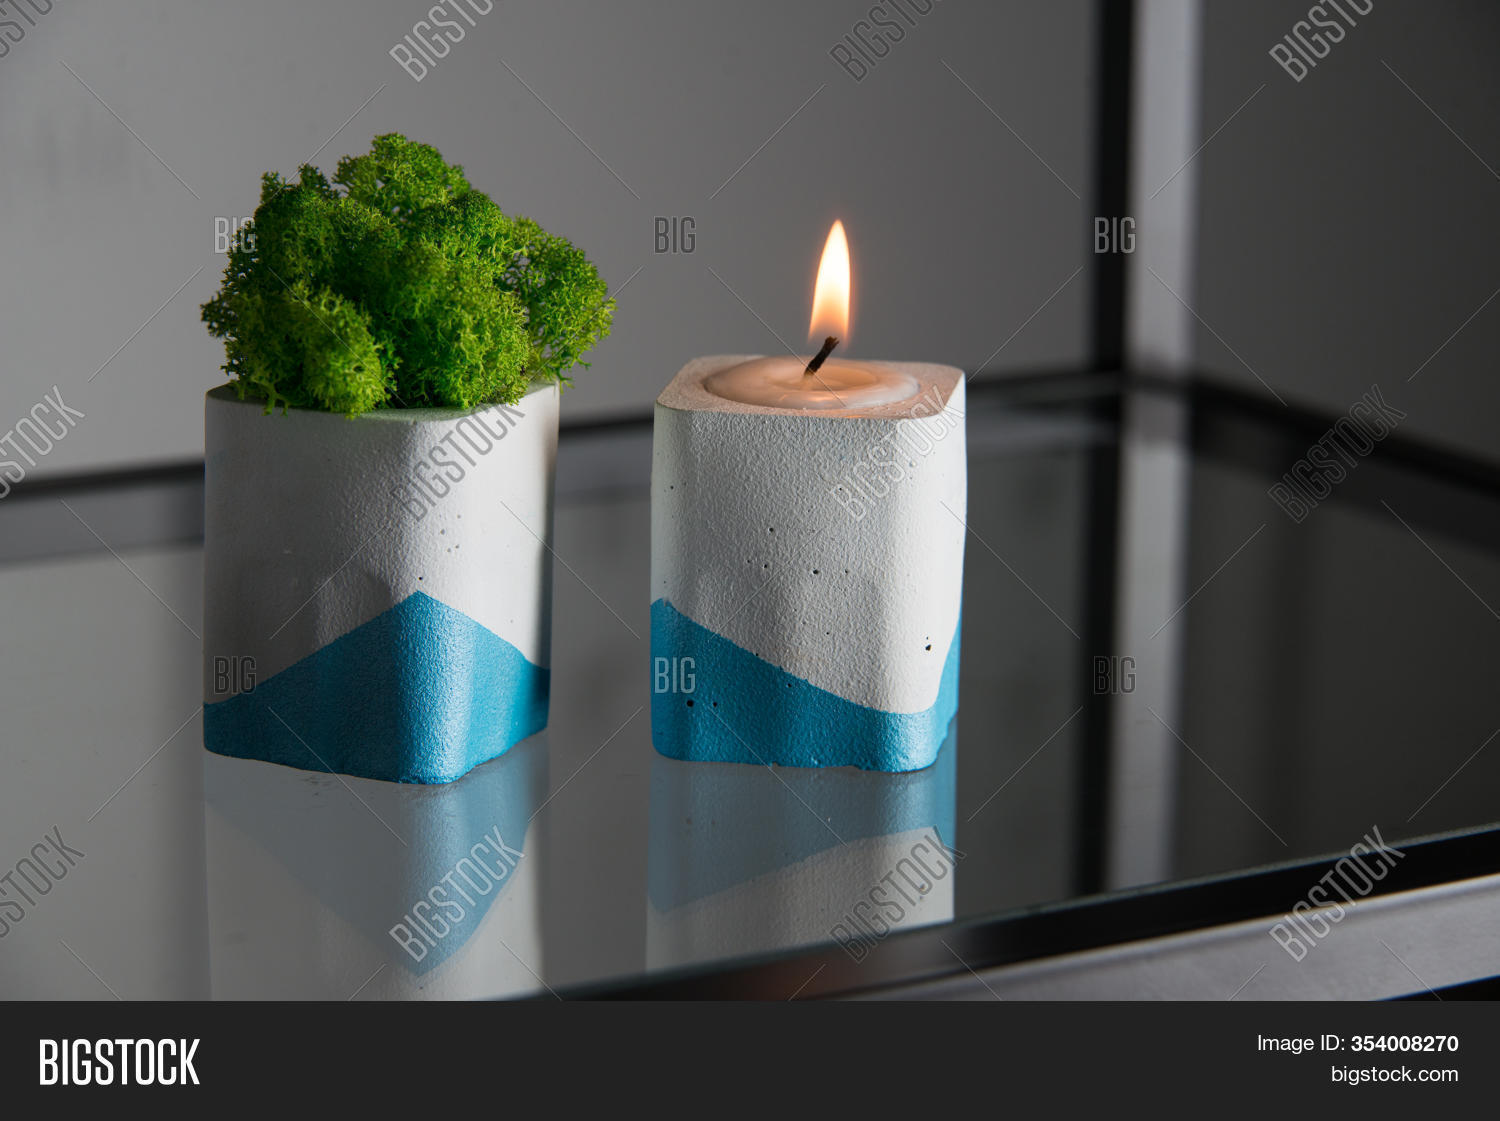 Candle Moss White Blue Image Photo Free Trial Bigstock